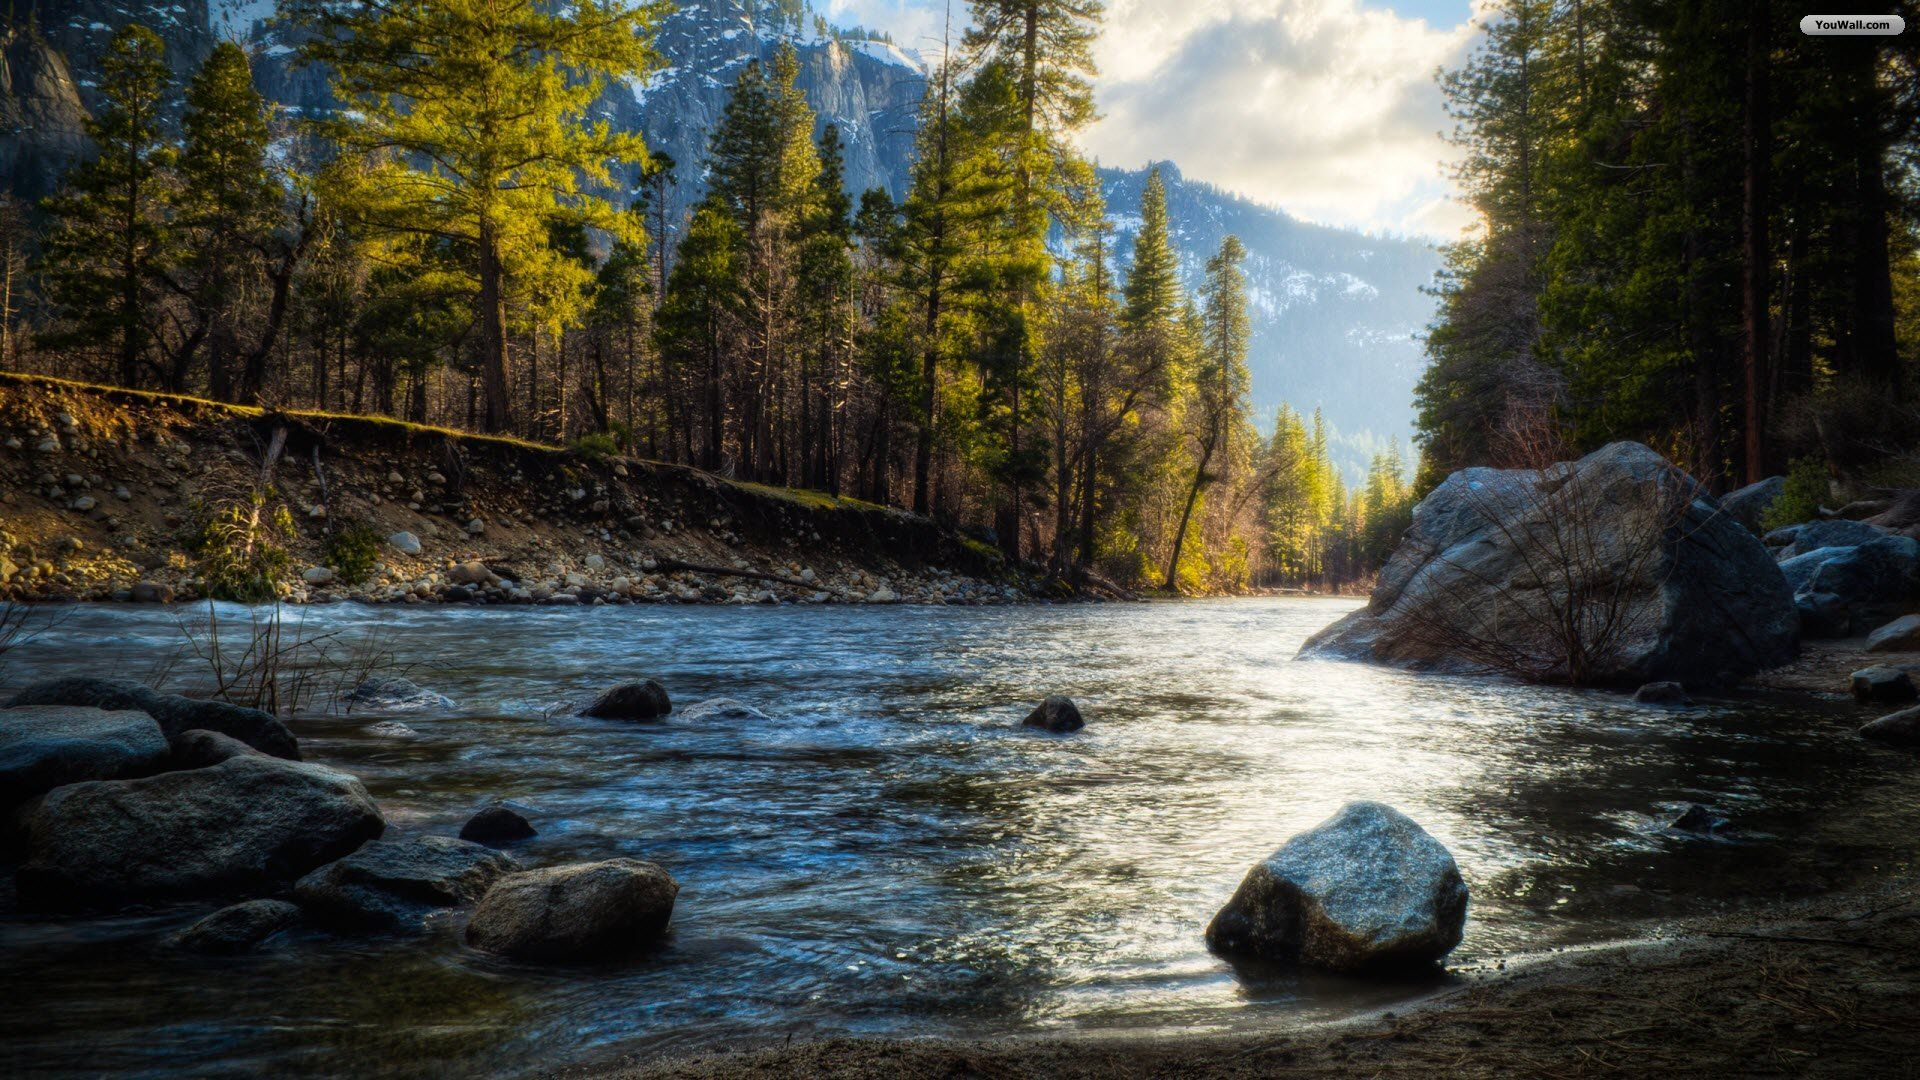 4K River Wallpapers   Top 4K River Backgrounds   WallpaperAccess 1920x1080